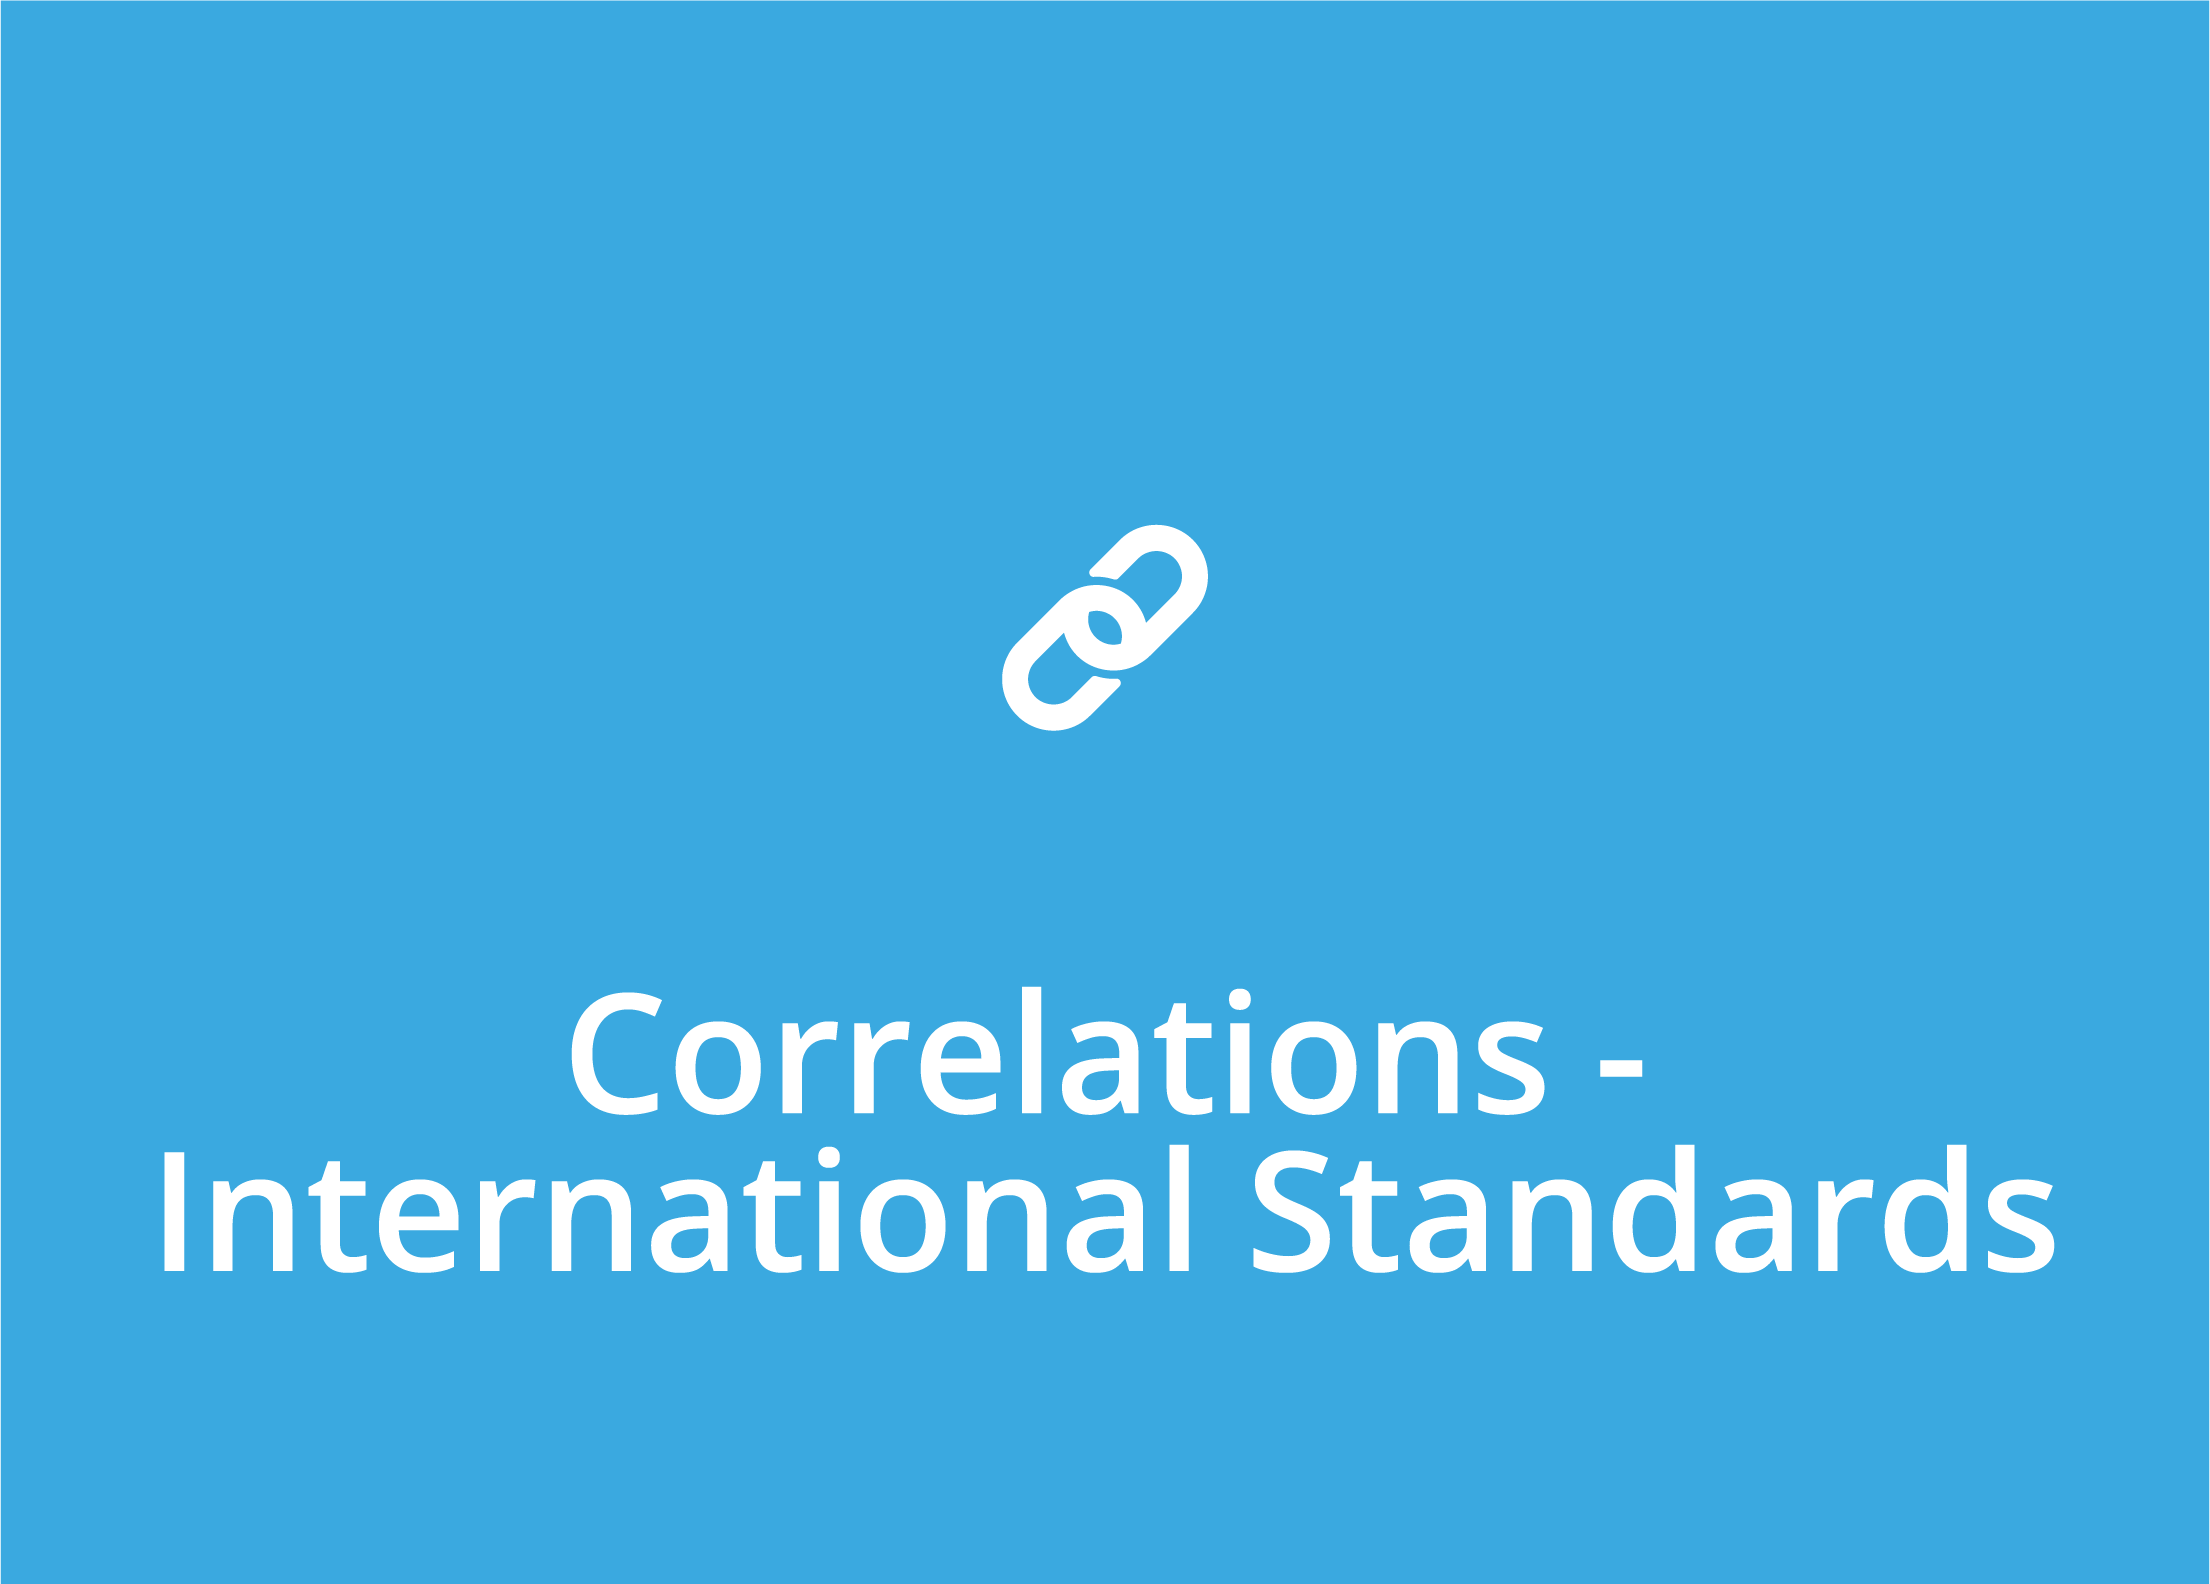 Correlations - Internatonal Standards